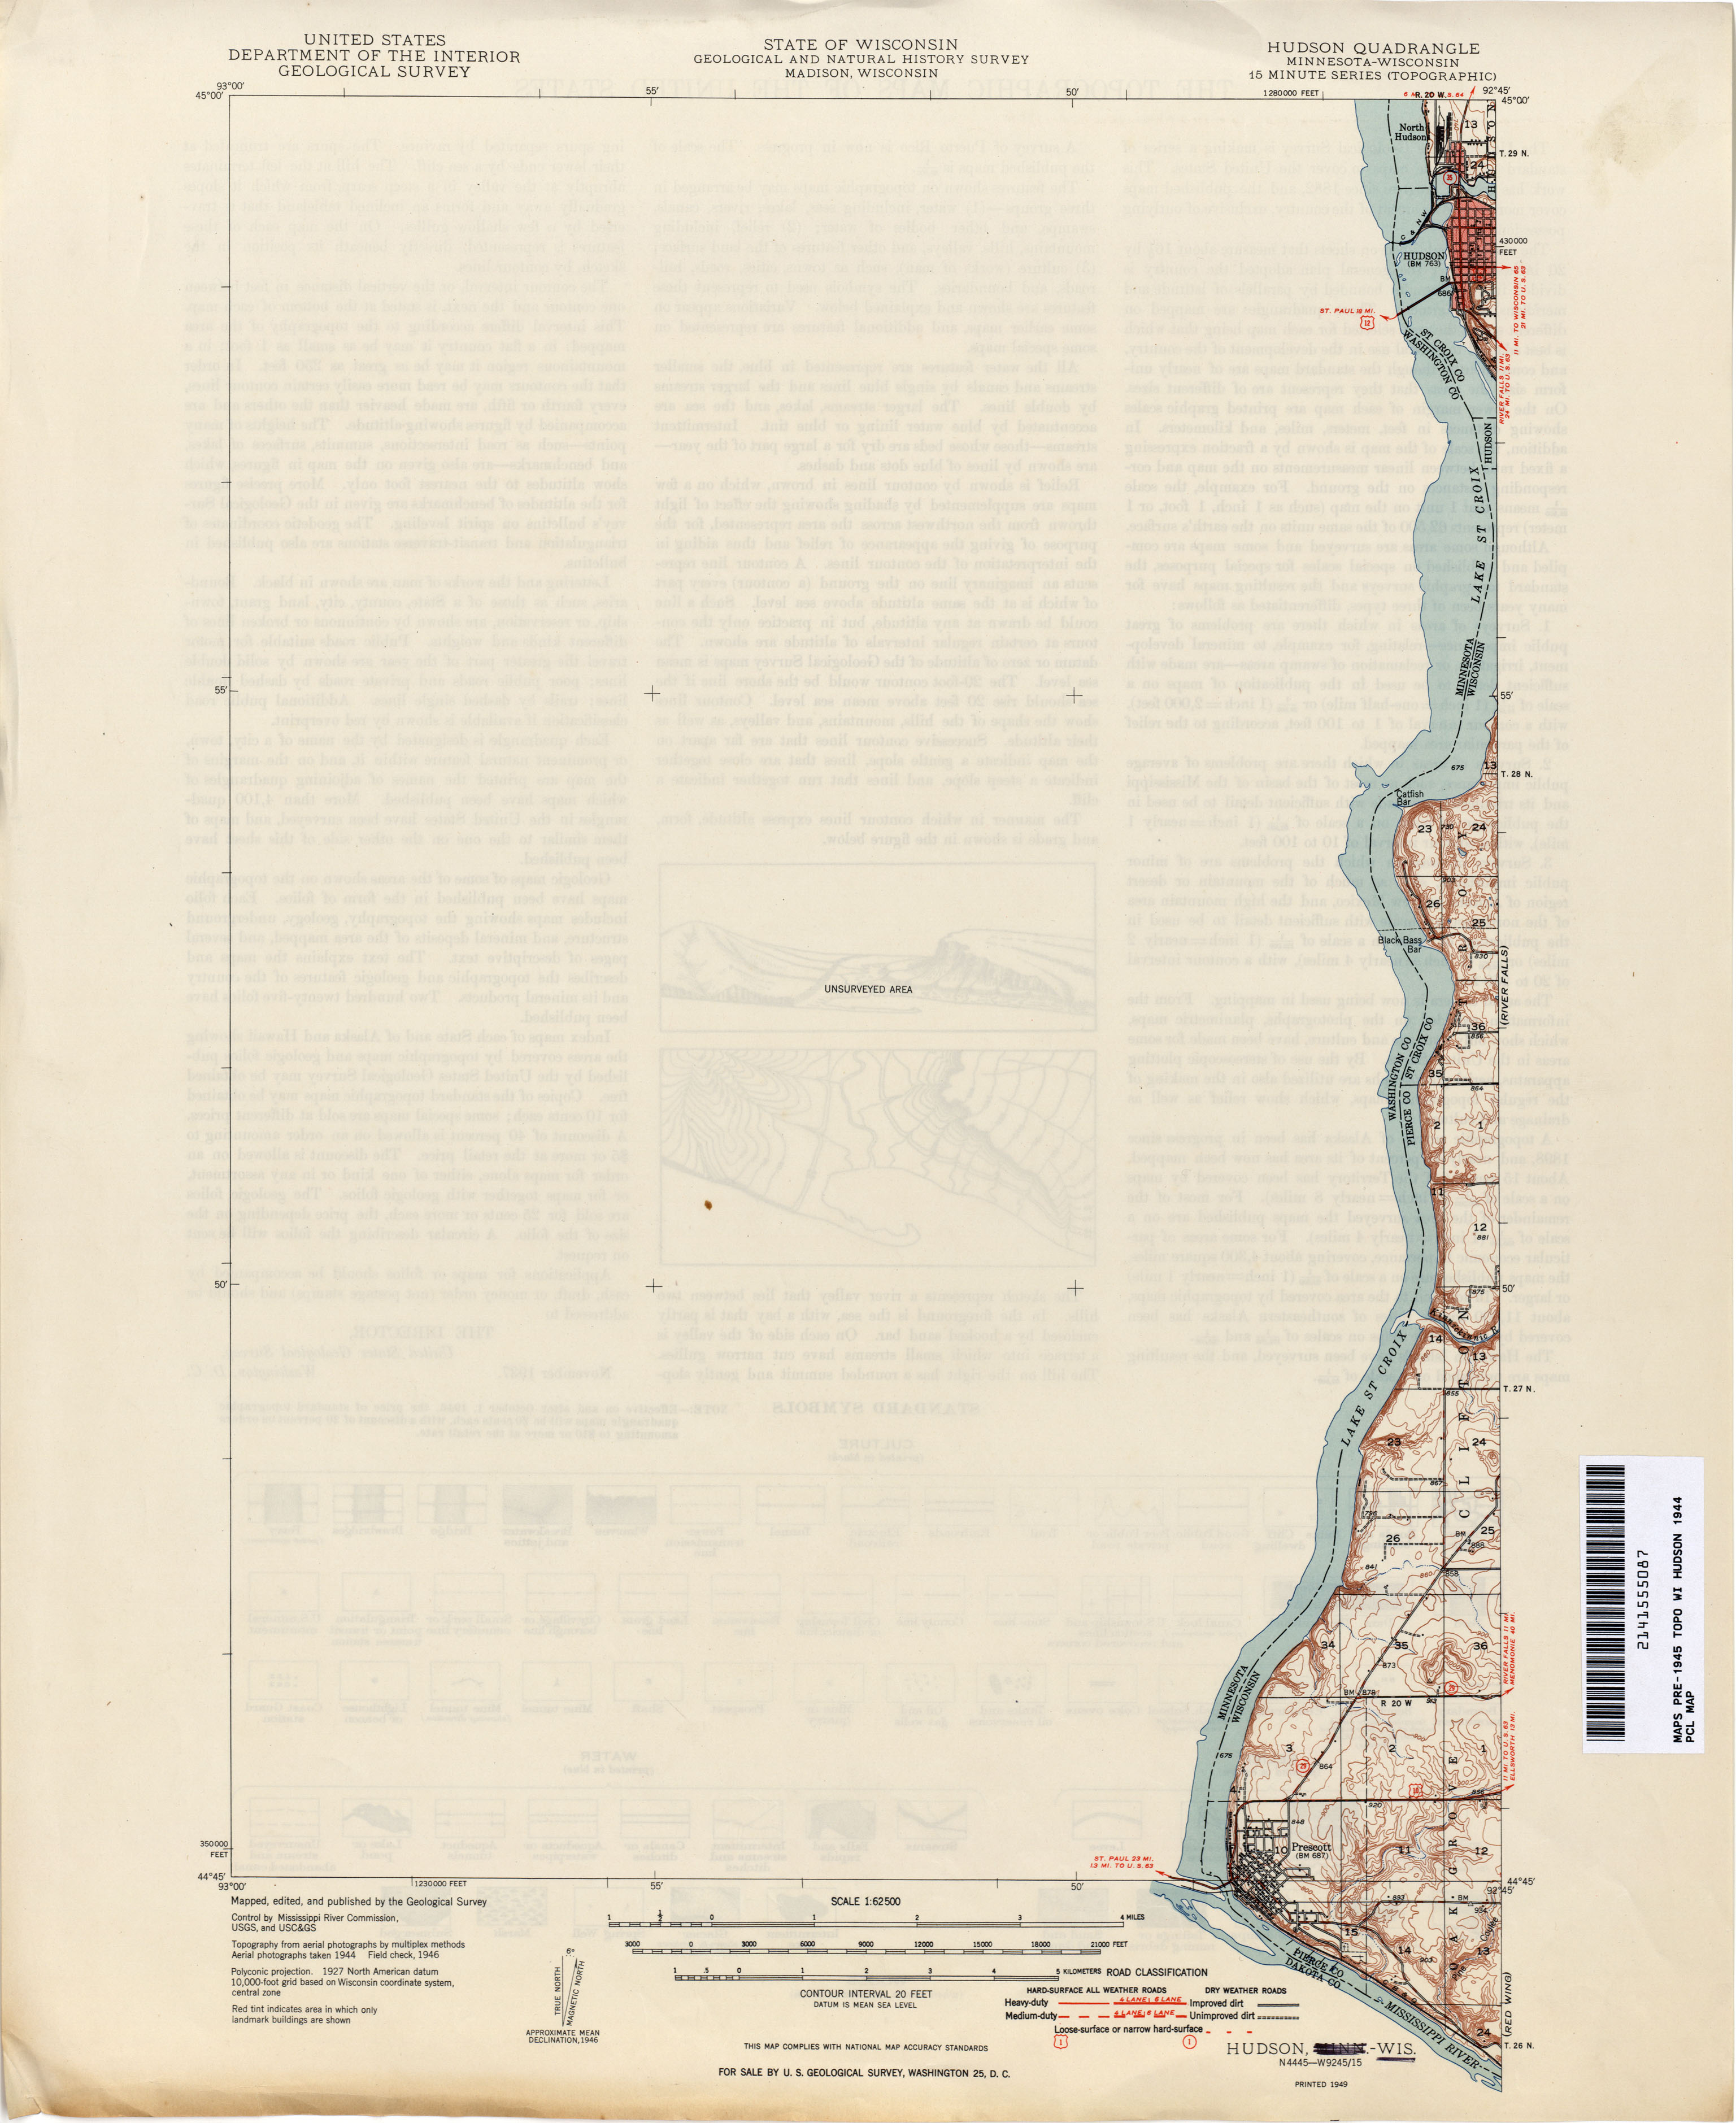 Historical Topographic Maps PerryCastañeda Map Collection UT - Wisconsin on us map